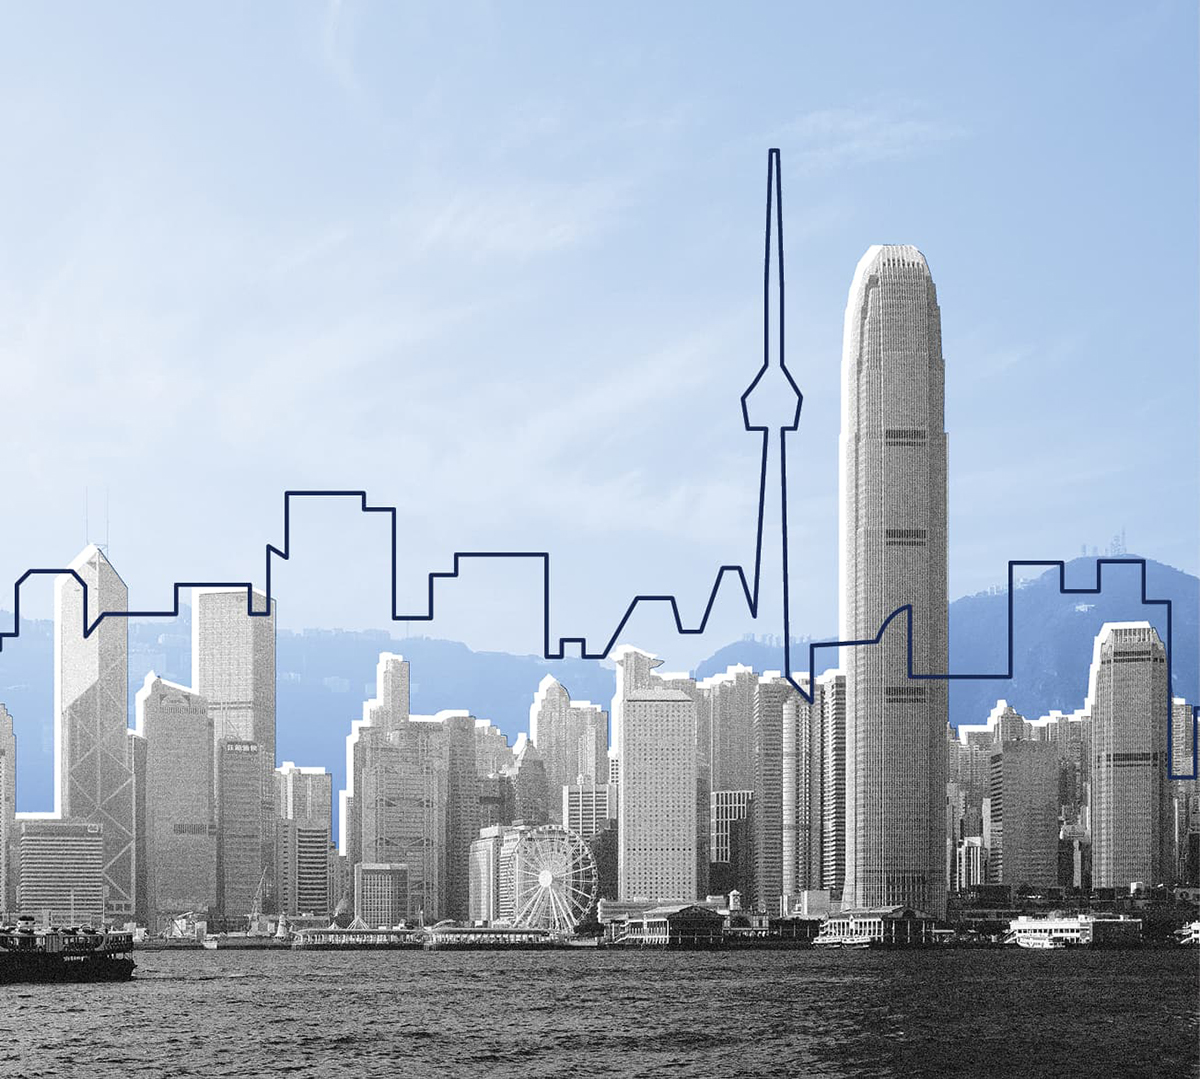 Hong Kong harbour skyline in black and white with an outline of the Toronto skyline overlaying it